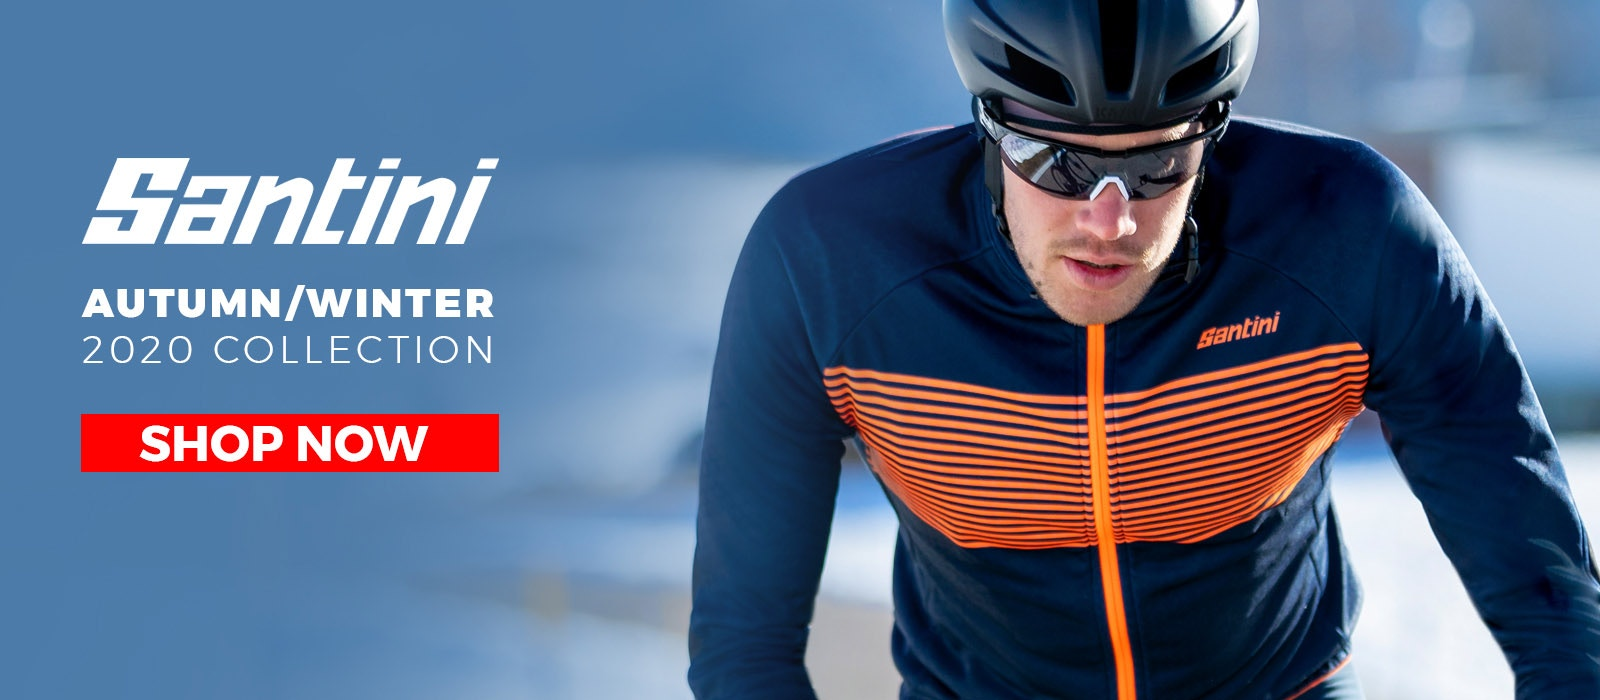 Santini Winter 2020 Collection